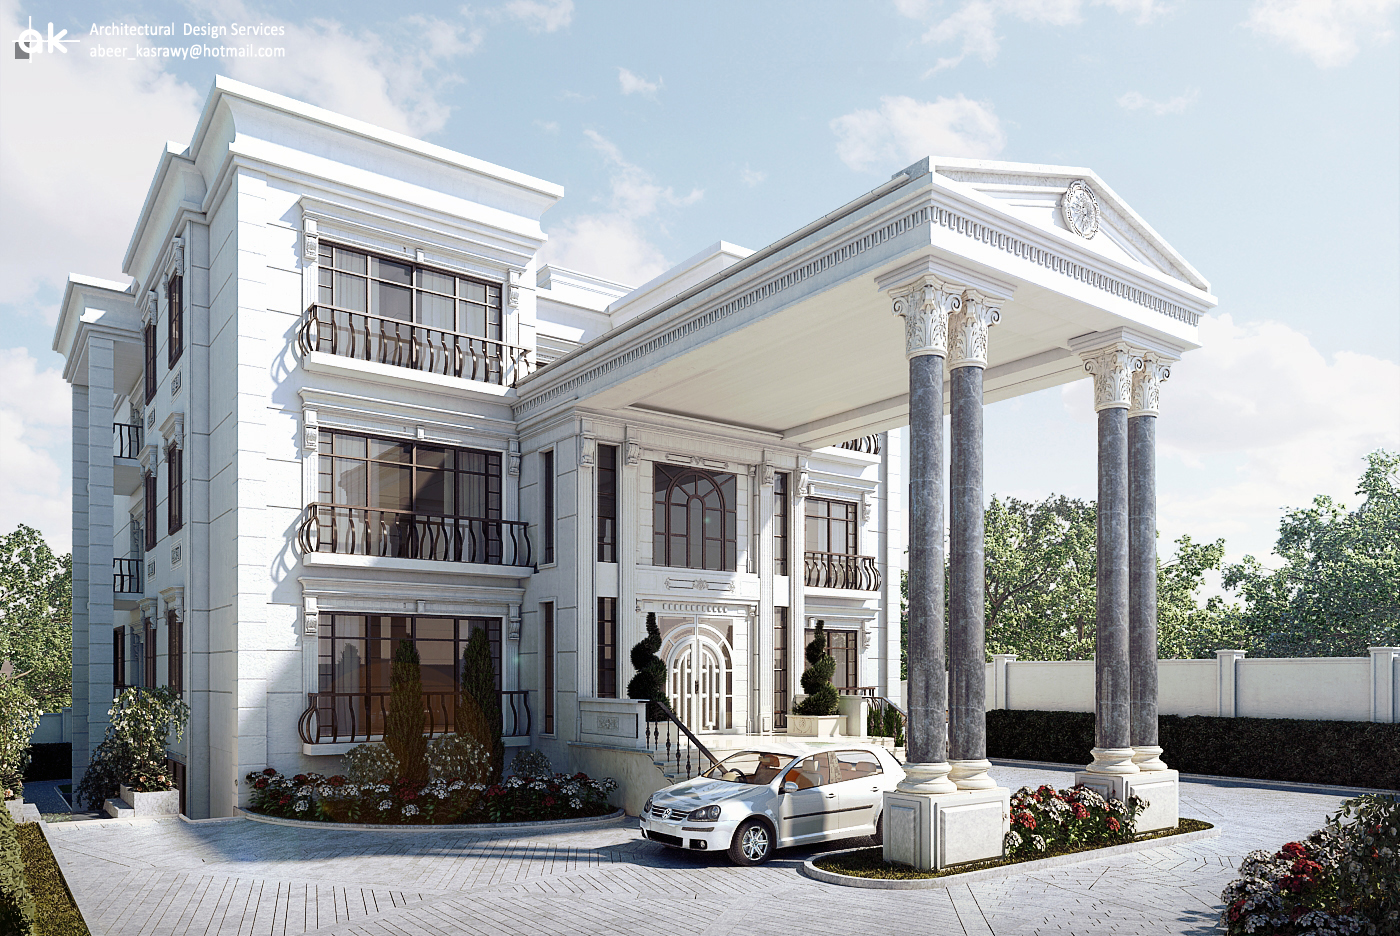 exterior house designs 3d max. Classic villa exterior by kasrawy on DeviantArt